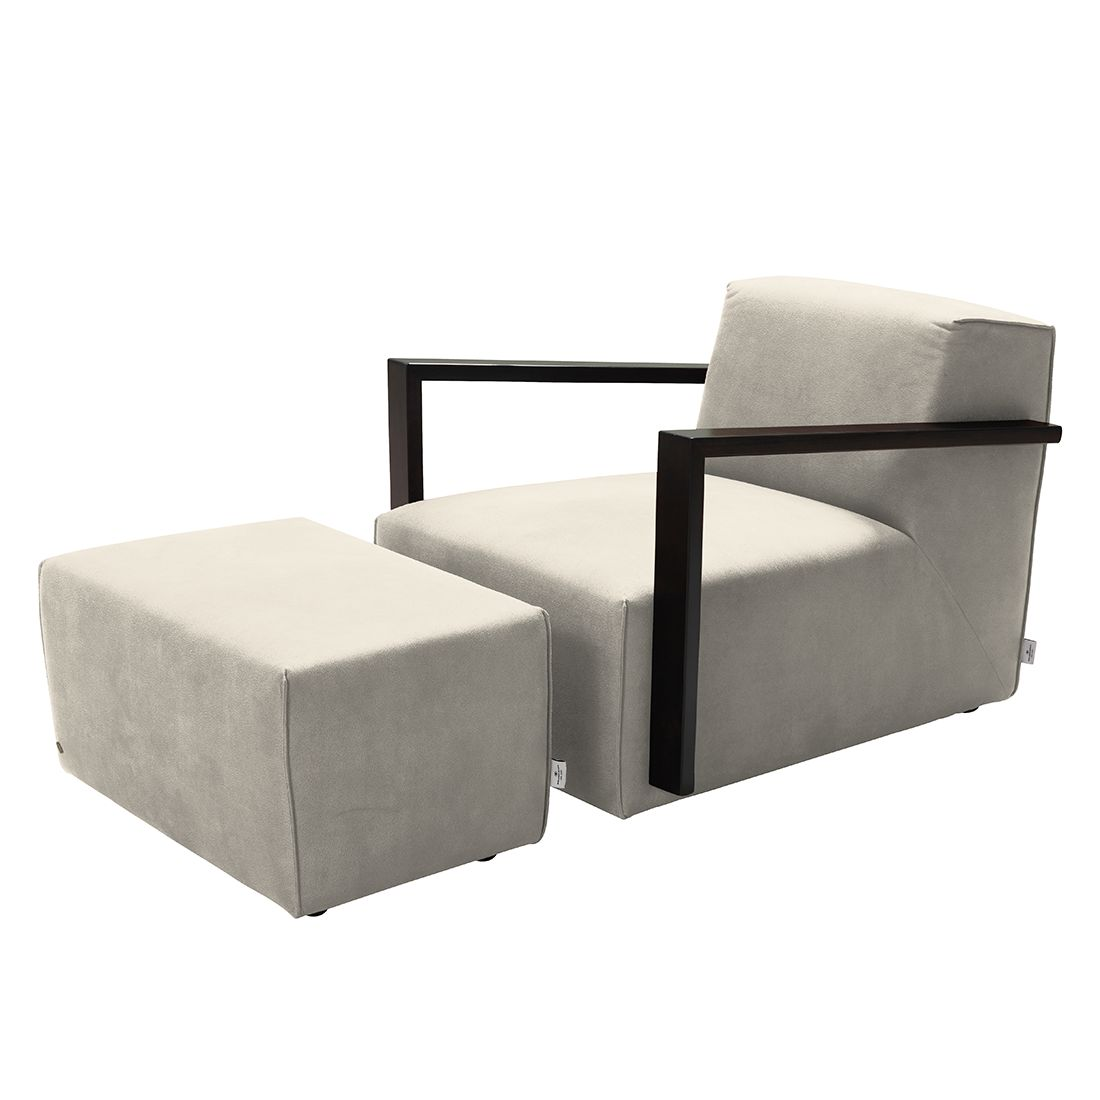 goedkoop Fauteuil Lazy antiekleren look Hocker Beige Tom Tailor